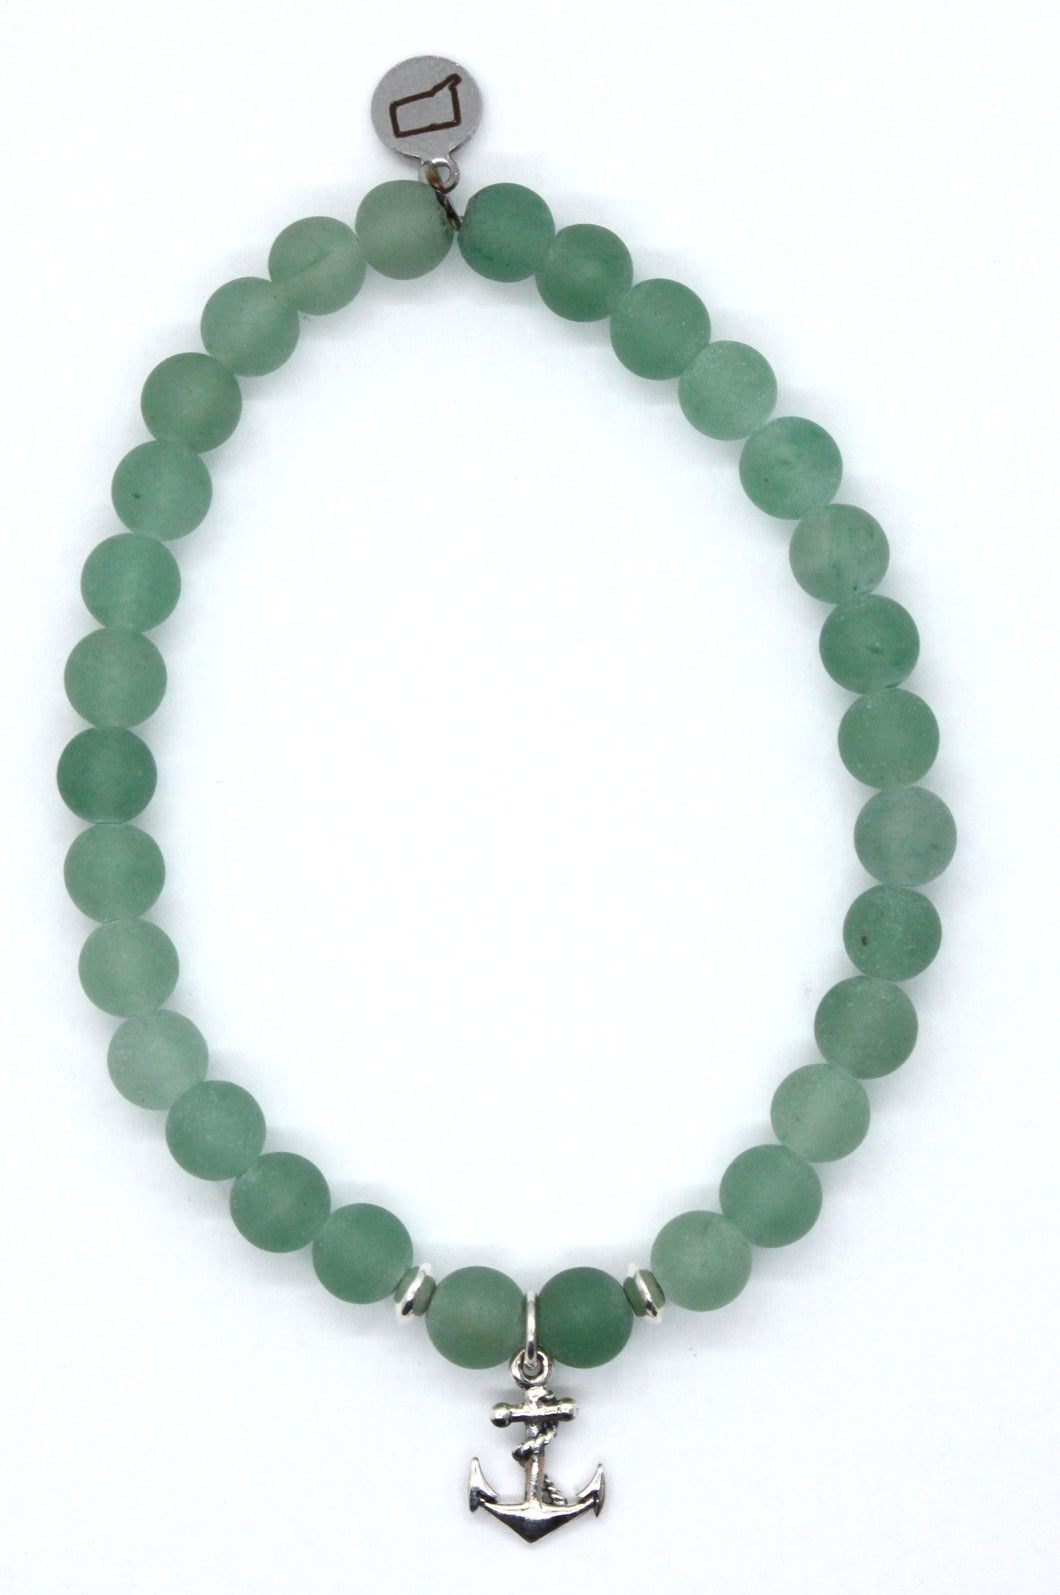 Matte Green Aventurine Stone Bracelet with Sterling Silver Anchor Charm